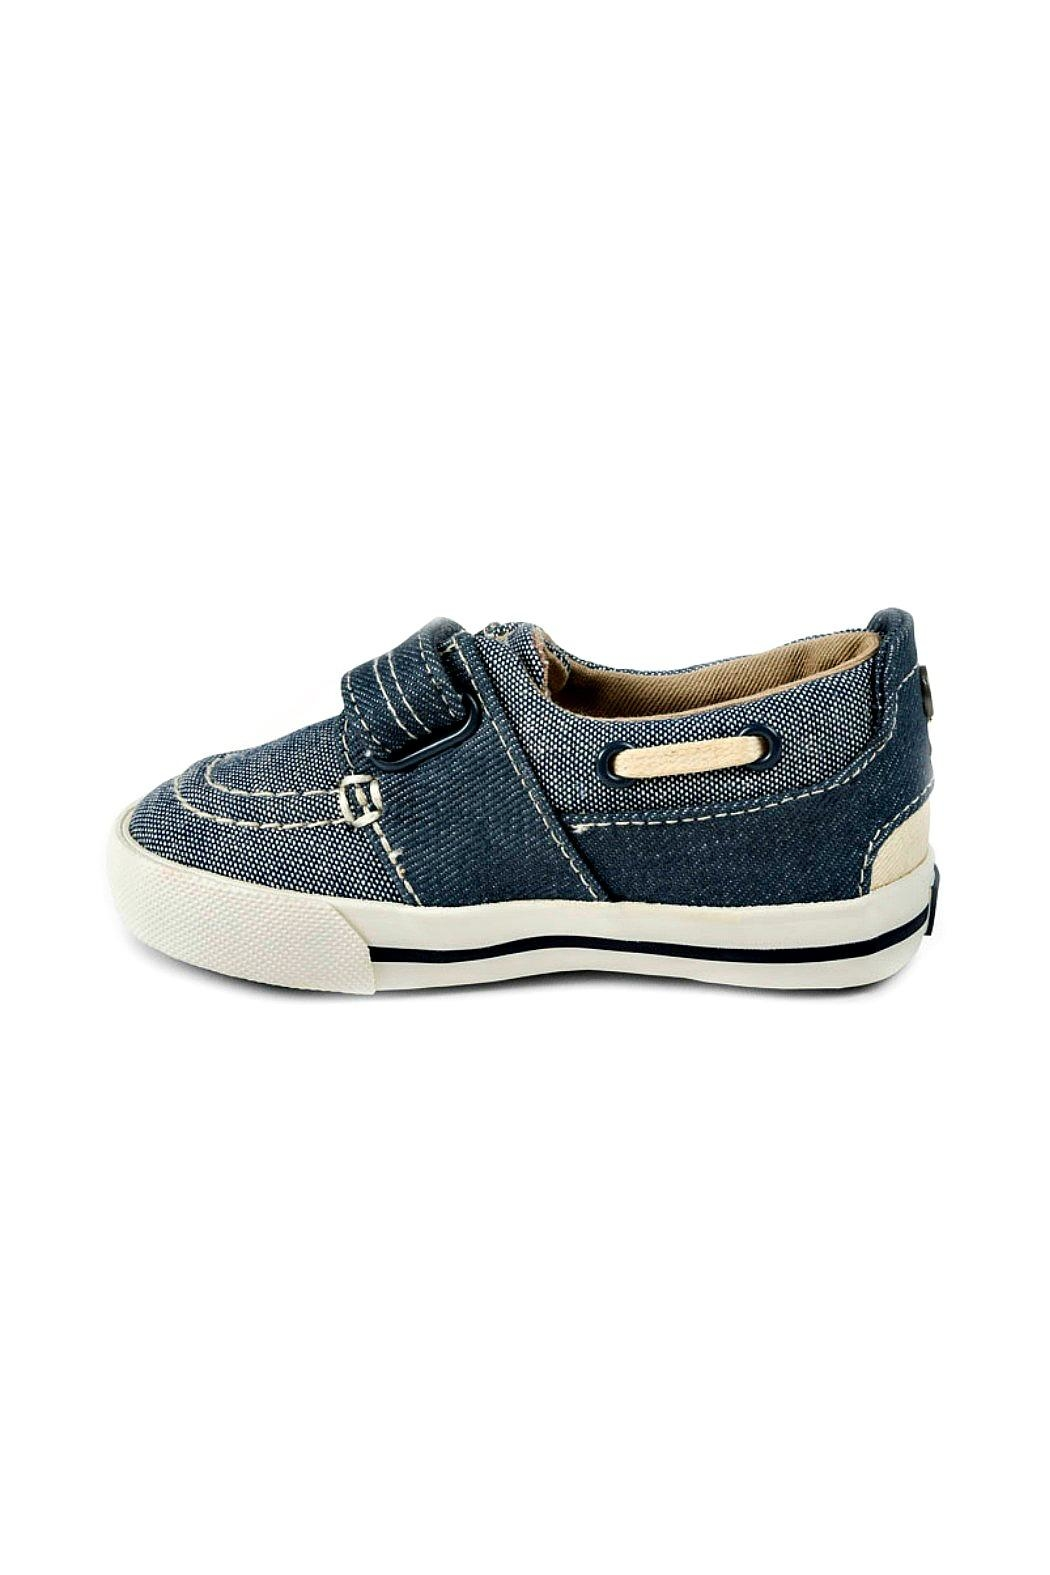 Mayoral Boys Nautical Denim-Boat-Shoes - Back Cropped Image